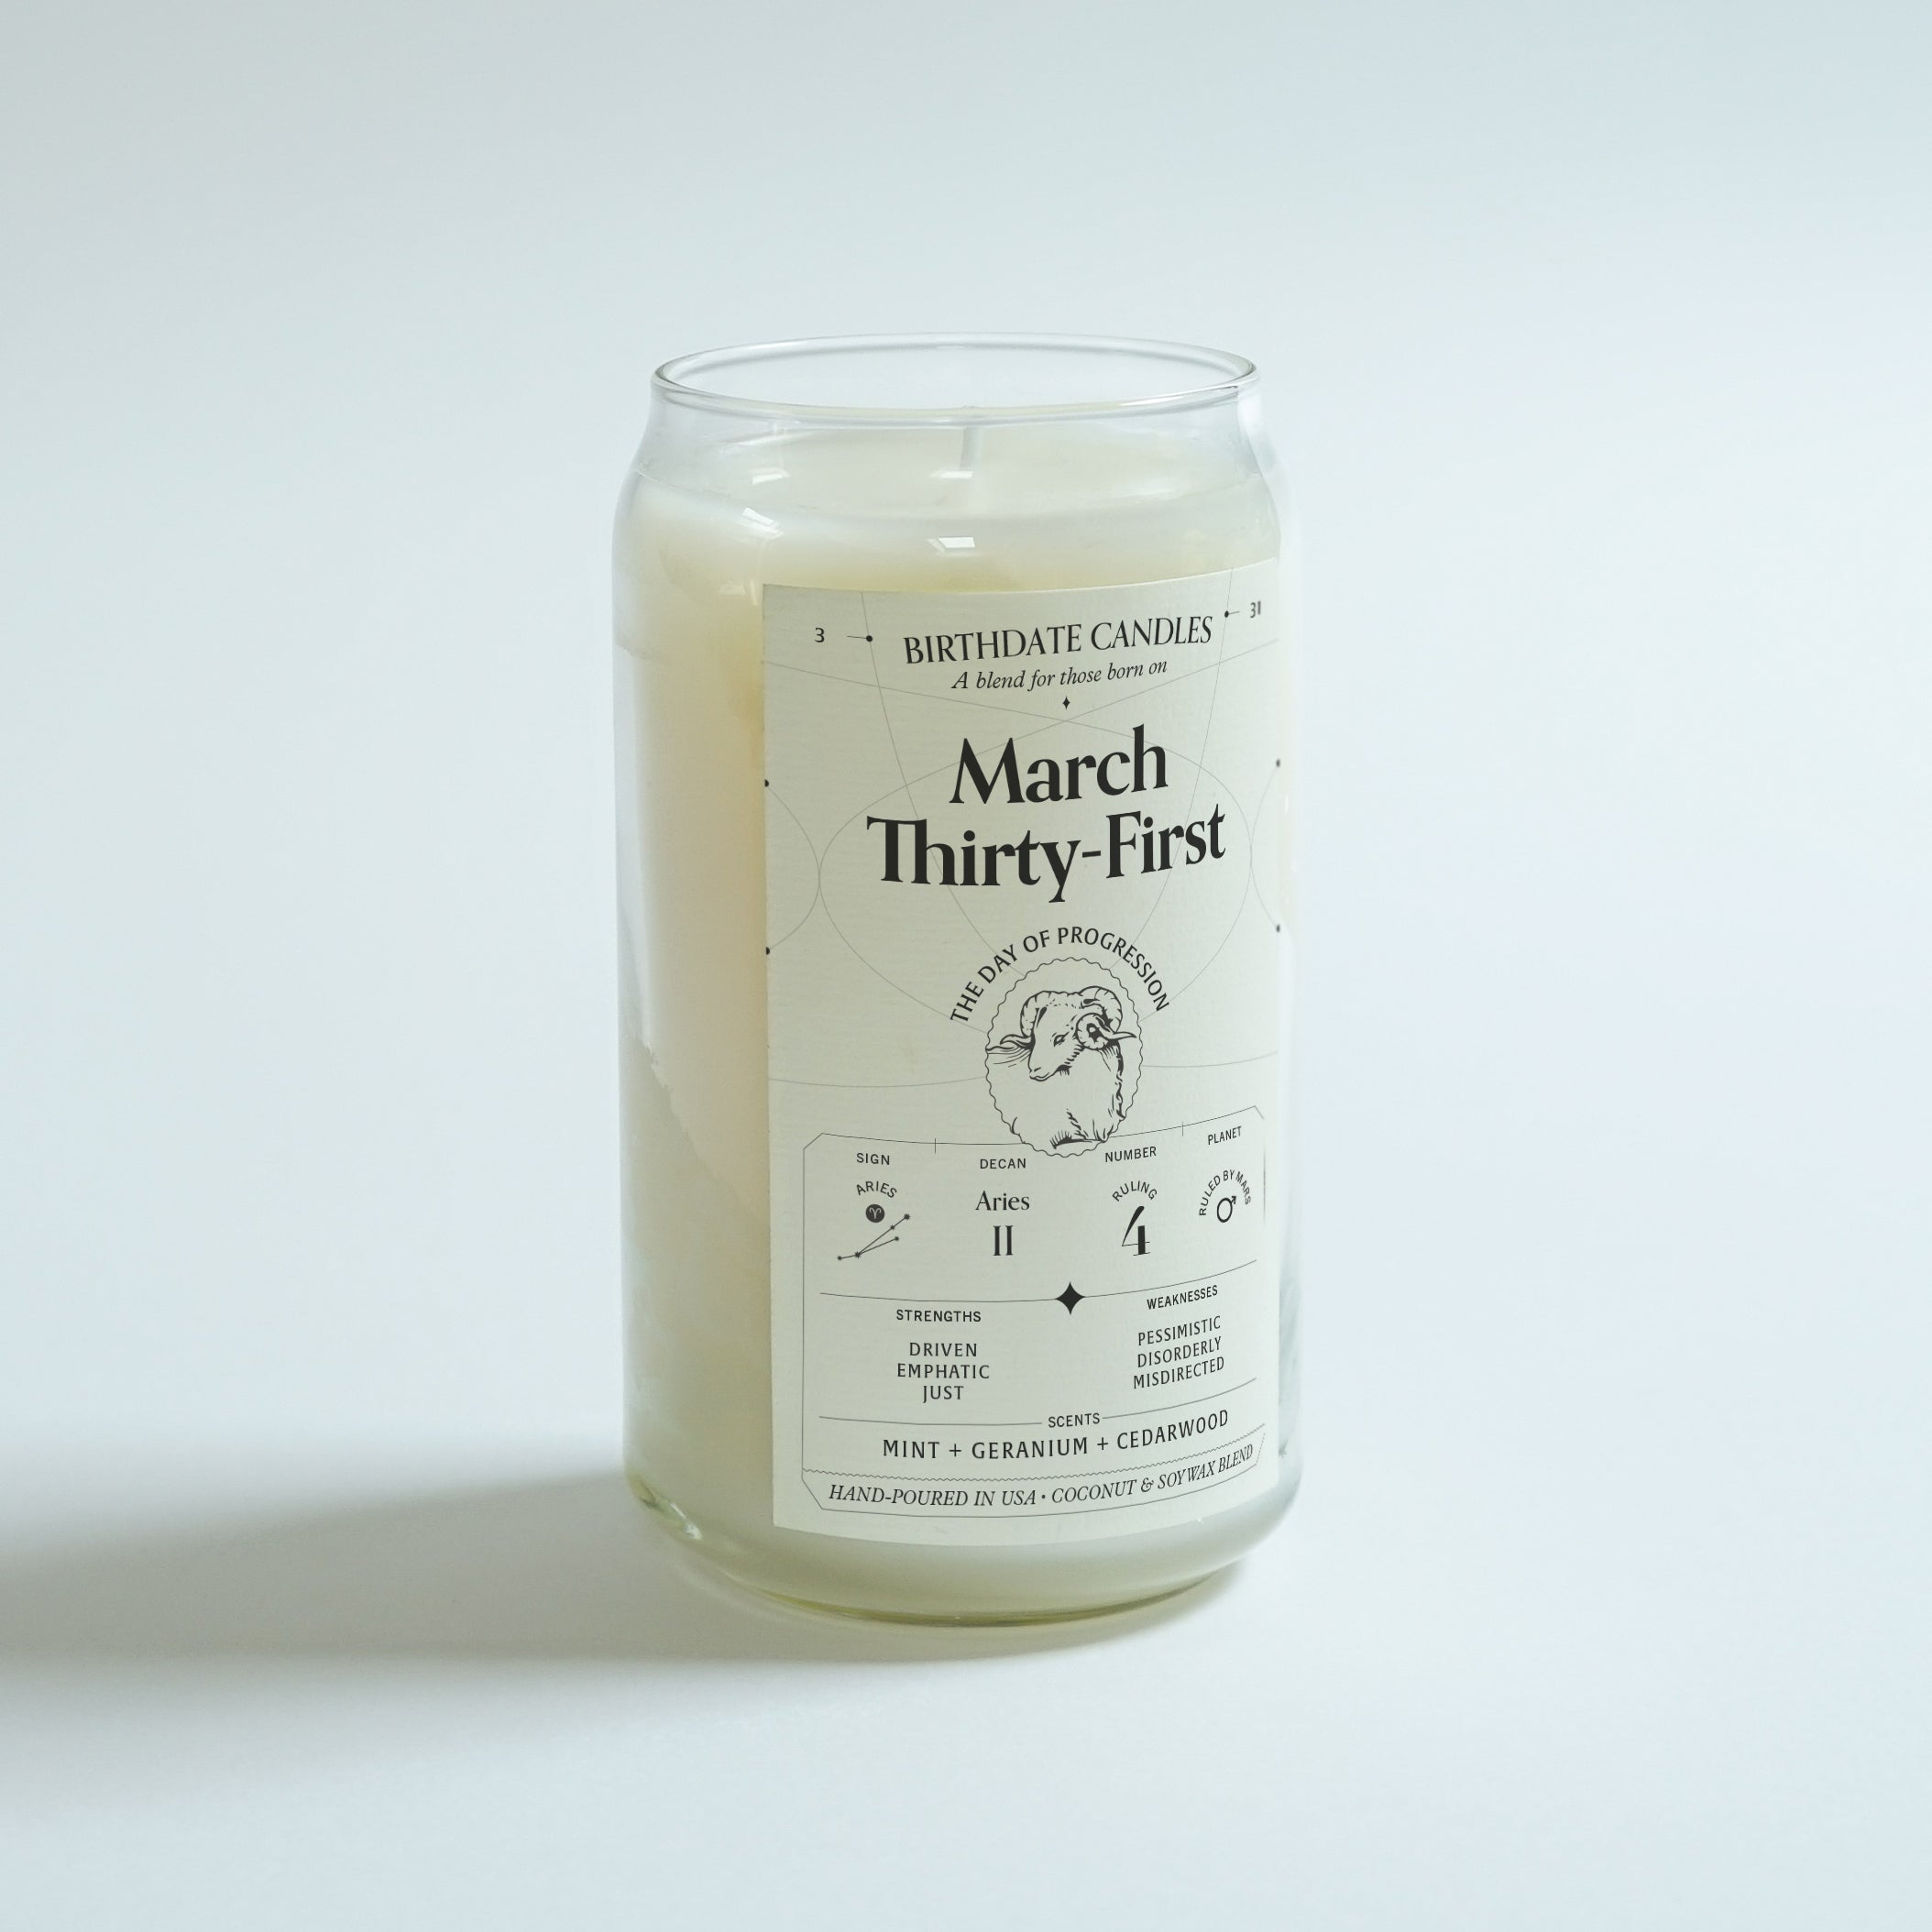 The March Thirty-First Candle